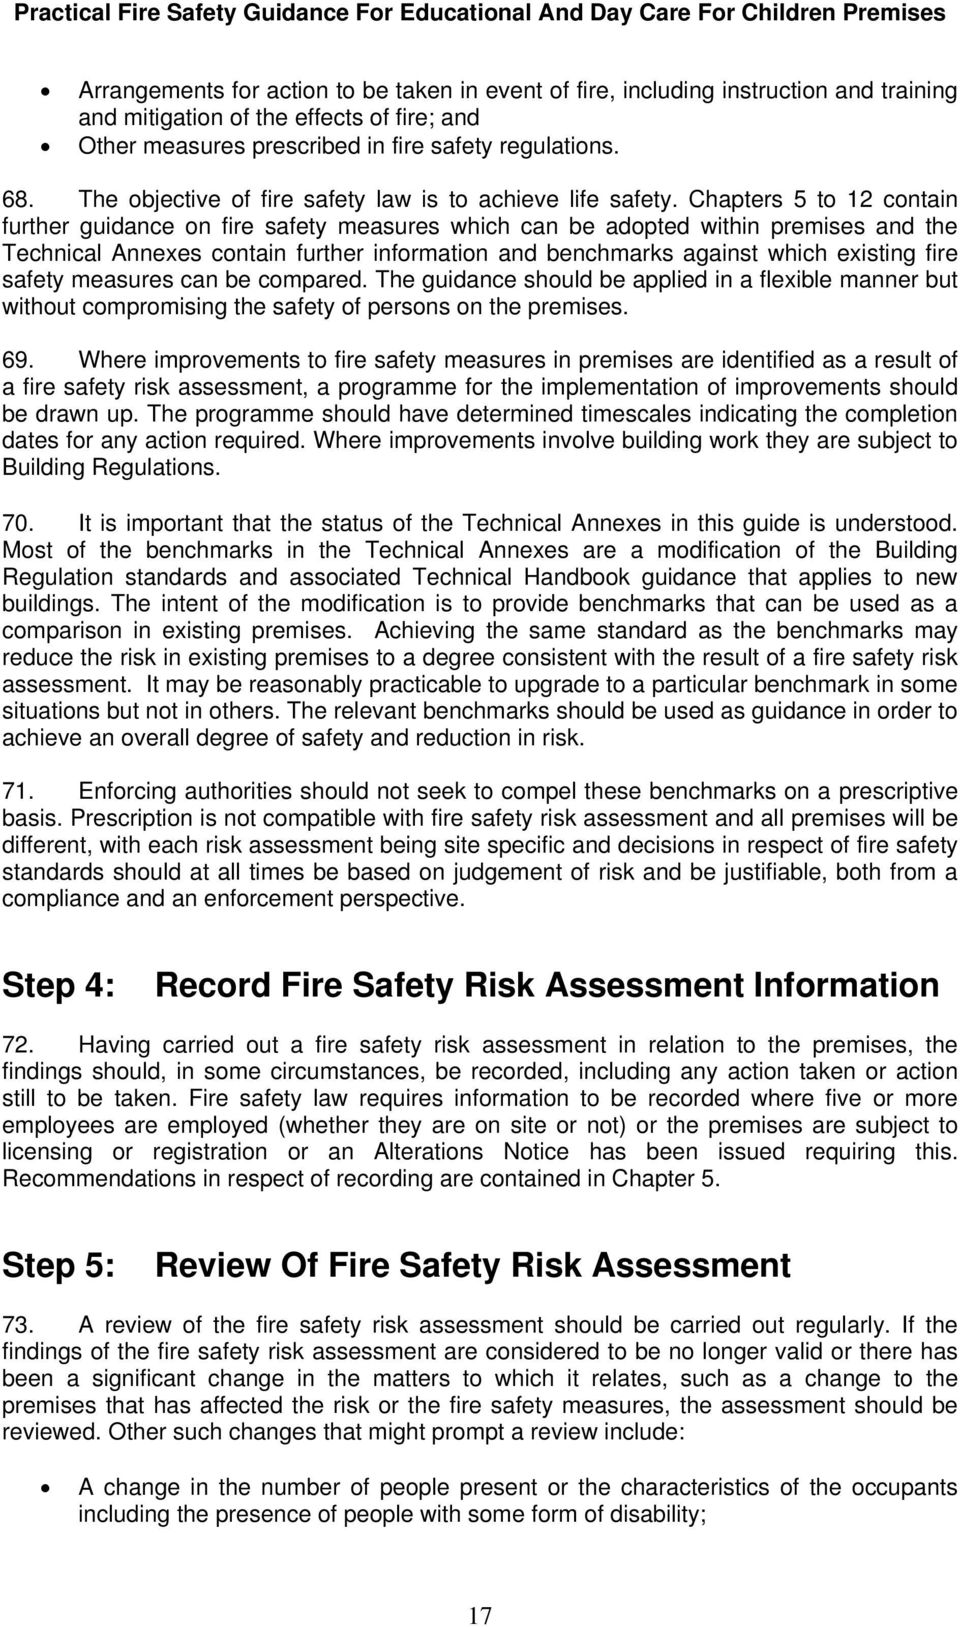 Chapters 5 to 12 contain further guidance on fire safety measures which can be adopted within premises and the Technical Annexes contain further information and benchmarks against which existing fire